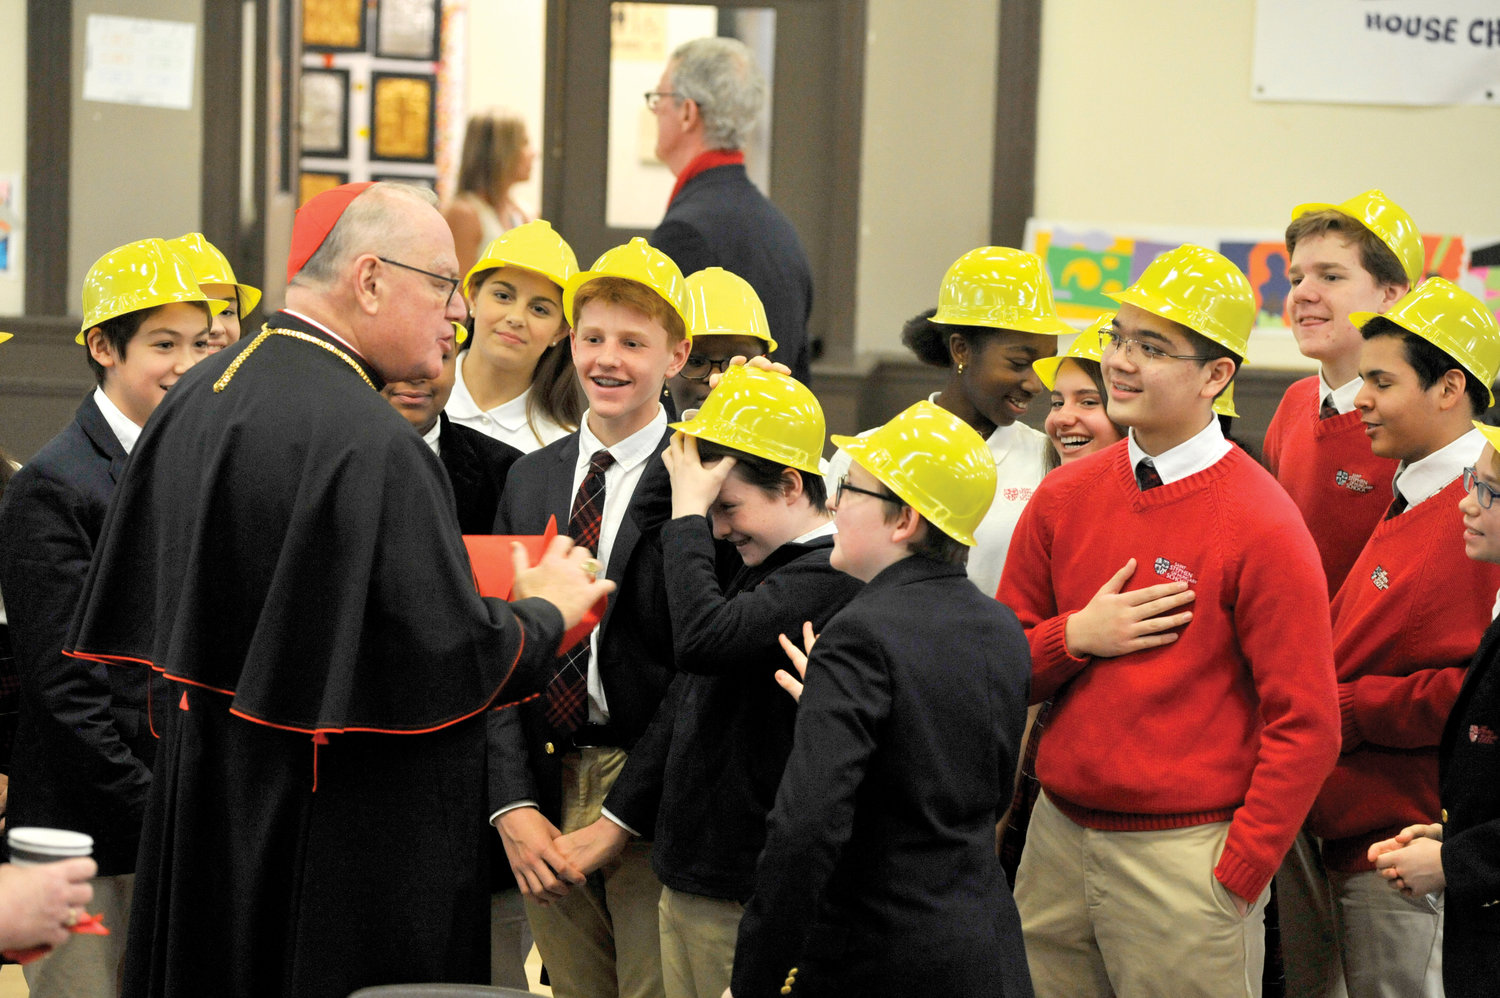 Cardinal Dolan shares a festive moment with students at St. Stephen of Hungary School in Manhattan March 11.